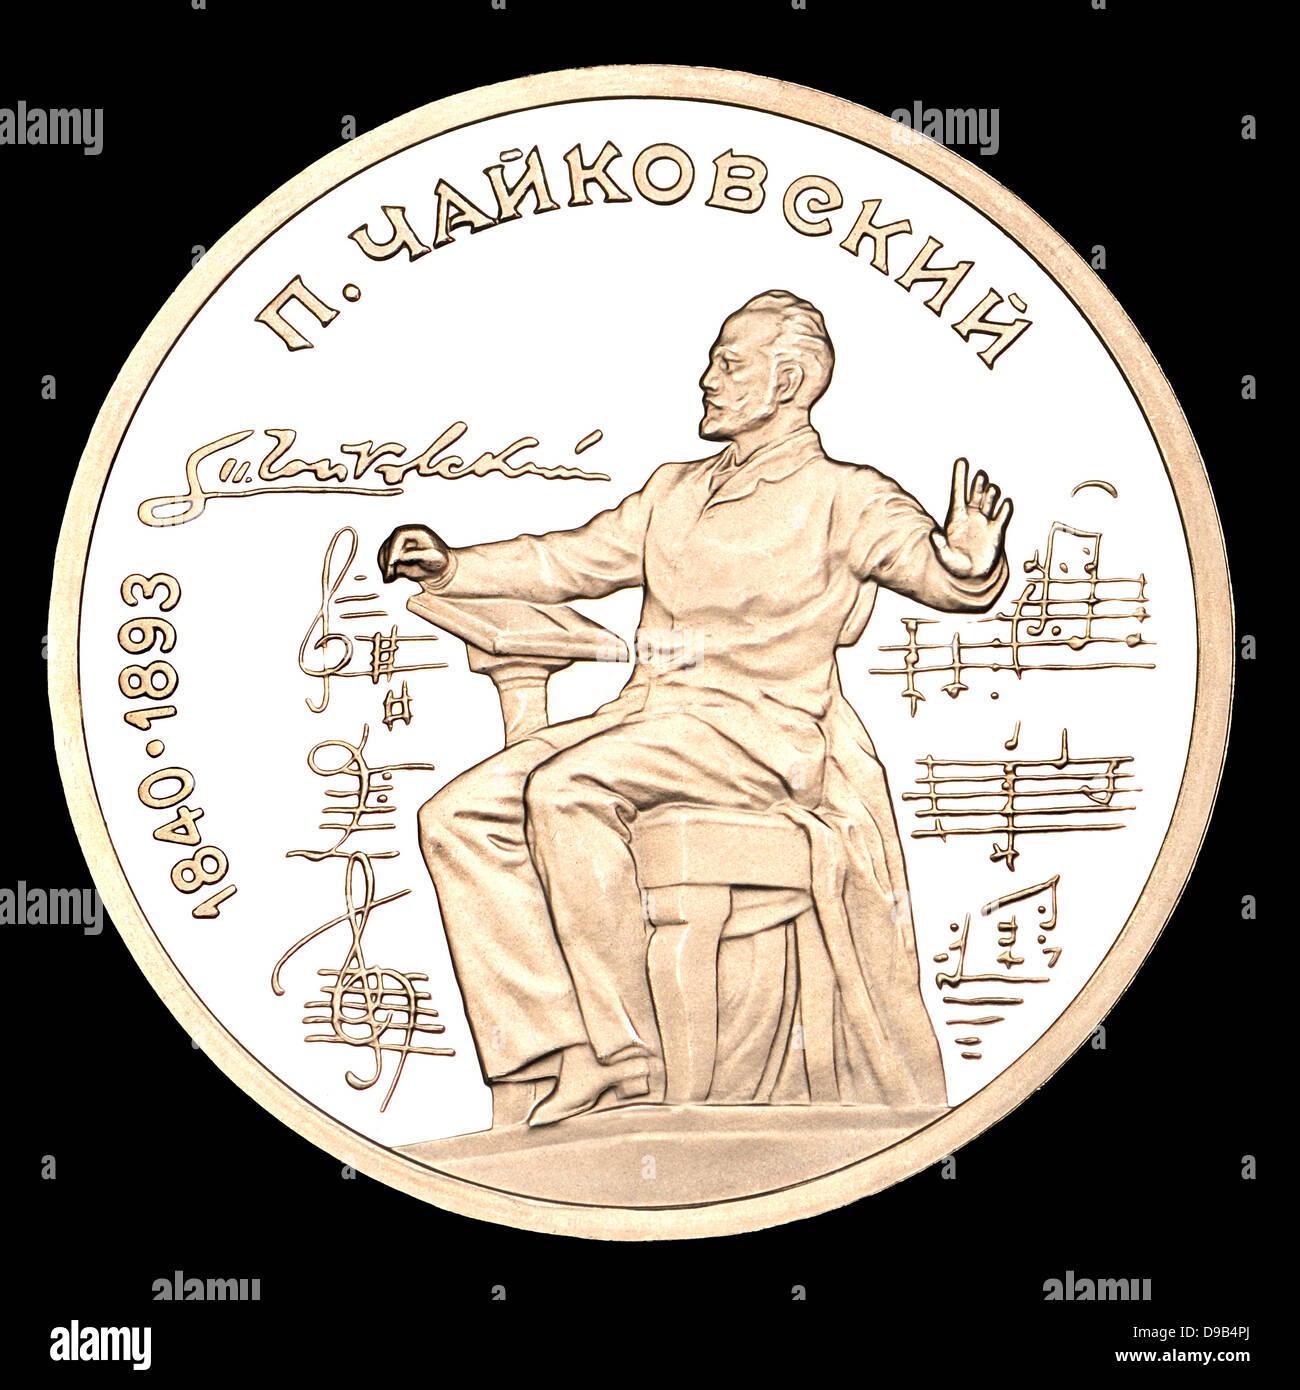 Russian silver coin depicting Tchaikovsky - Stock Image